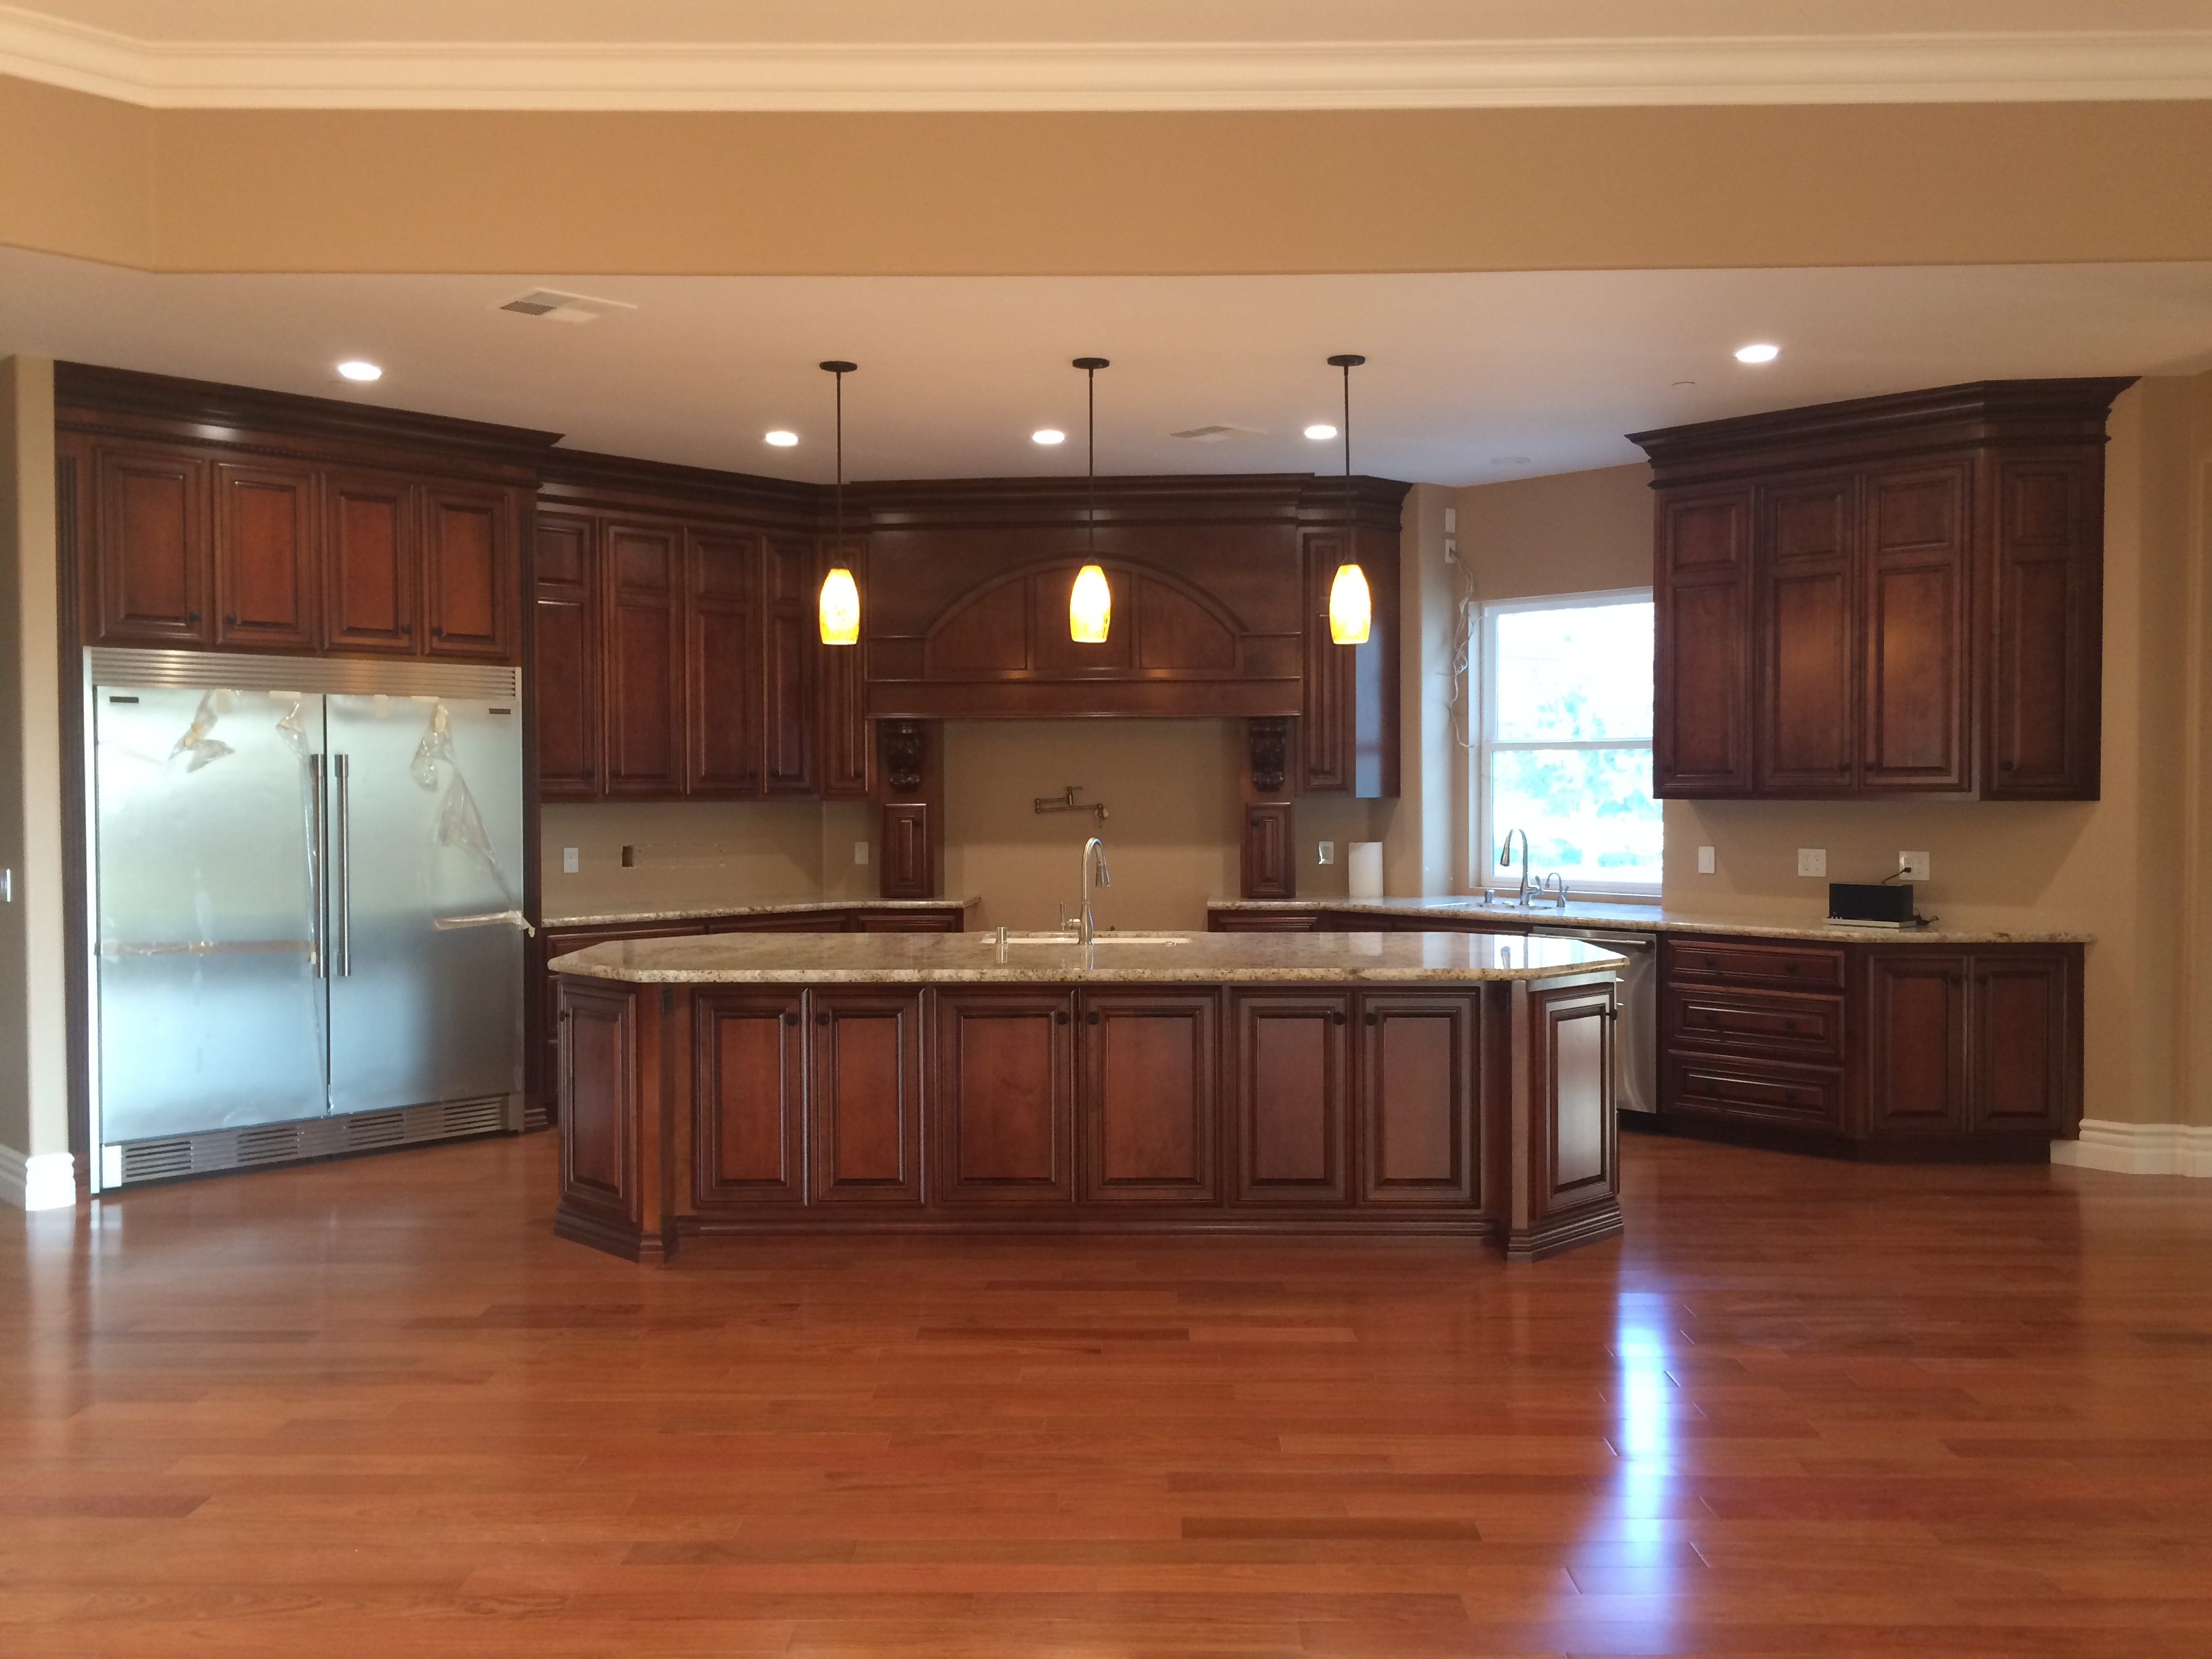 ... Cabinets Provides Clients In Stanislaus And Surrounding Counties With  The Finest Built In Cabinetry, Wall Units, And Custom Kitchens Available  Anywhere.